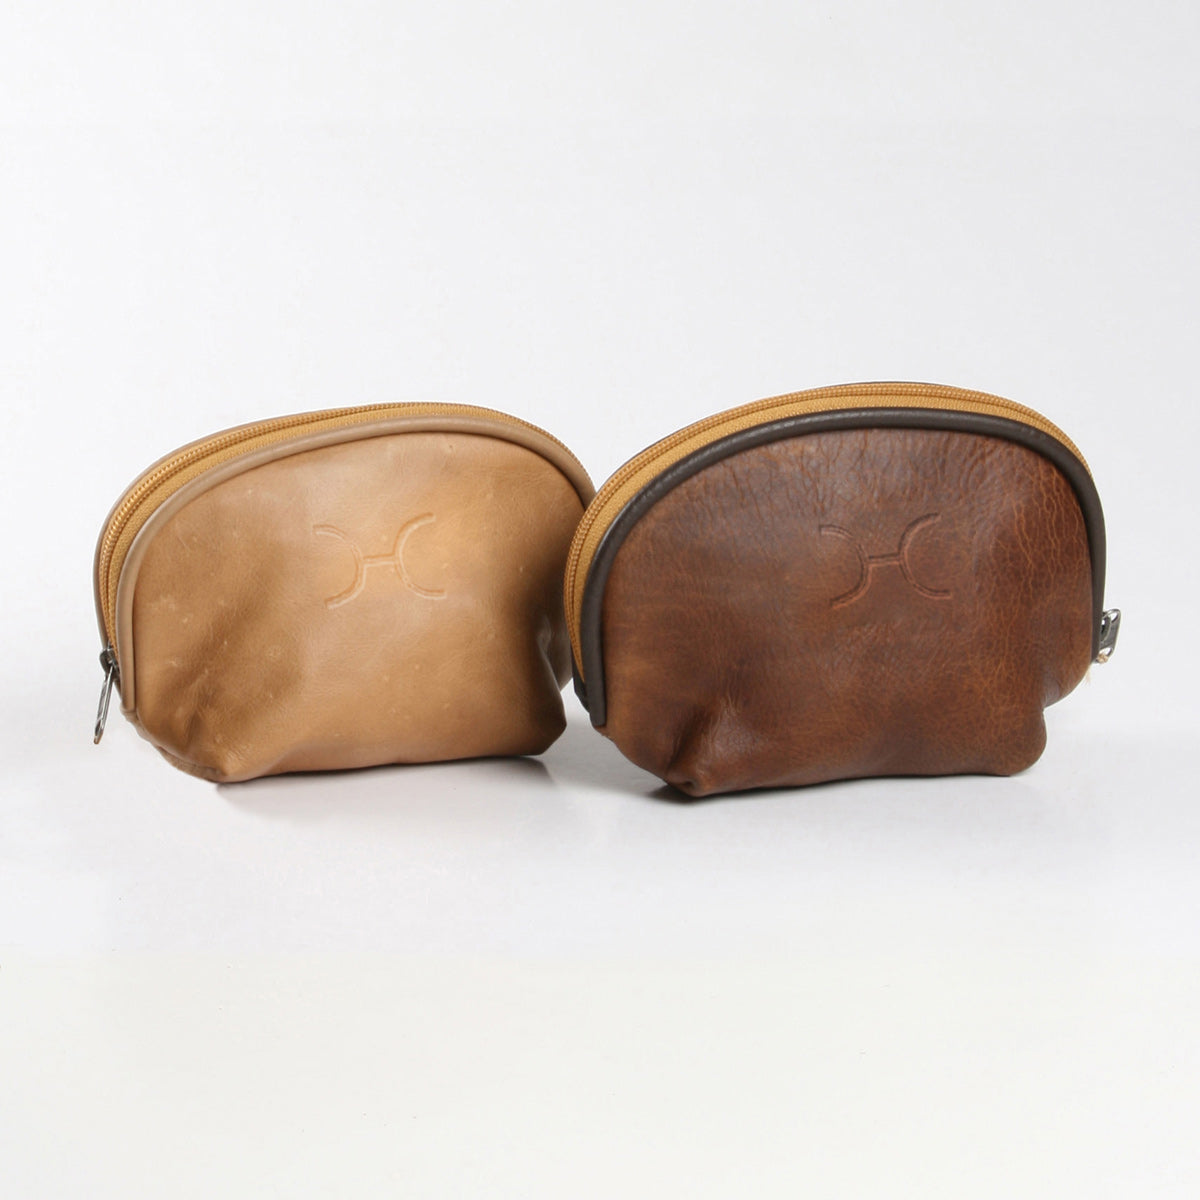 Thandana Cosmetic Bag - Hazelnut (light brown) - Zufrique Boutique